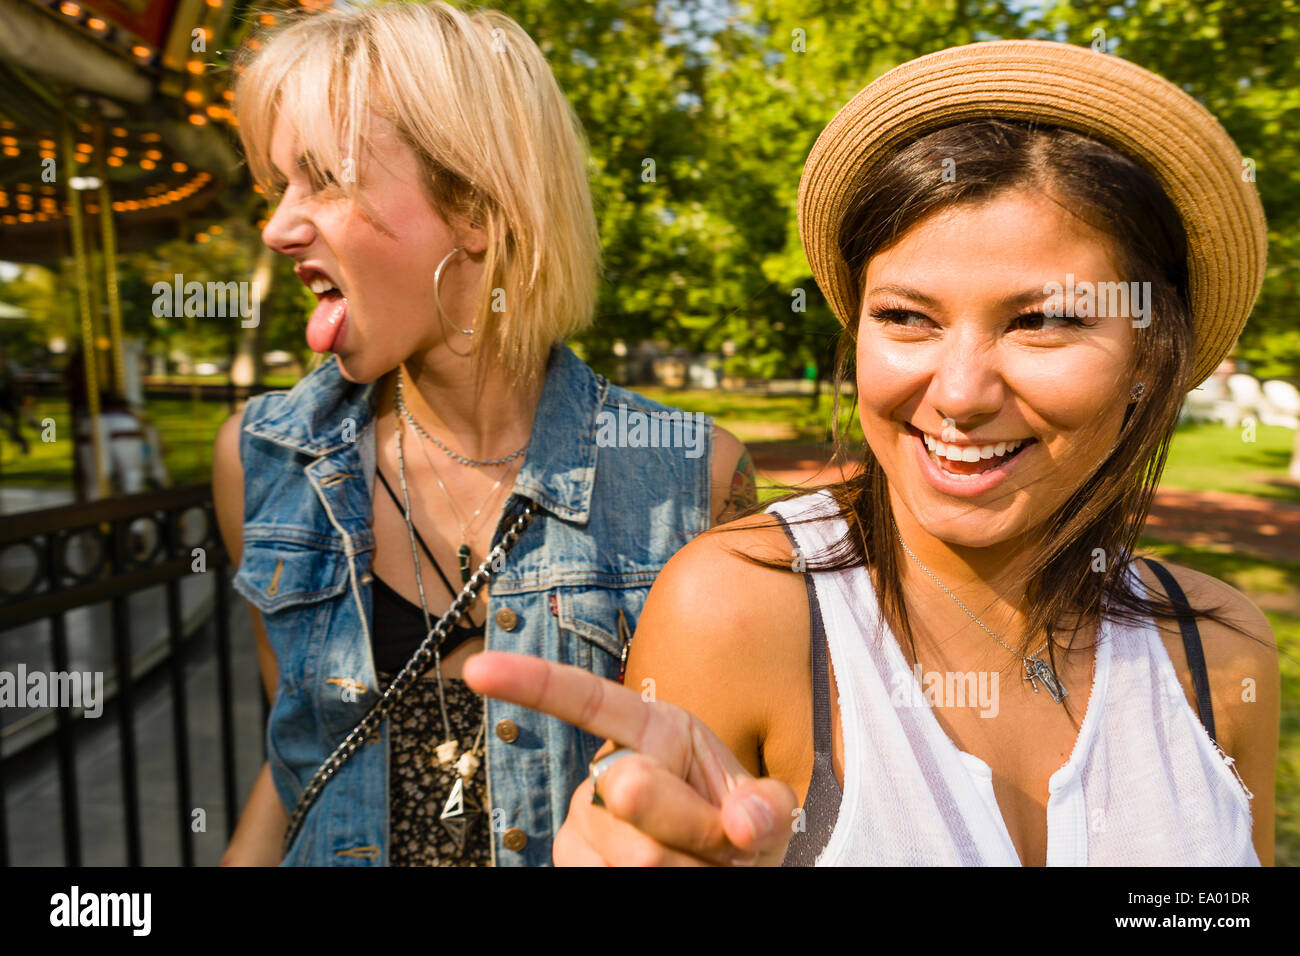 Two young women pointing and sticking out tongue in park - Stock Image